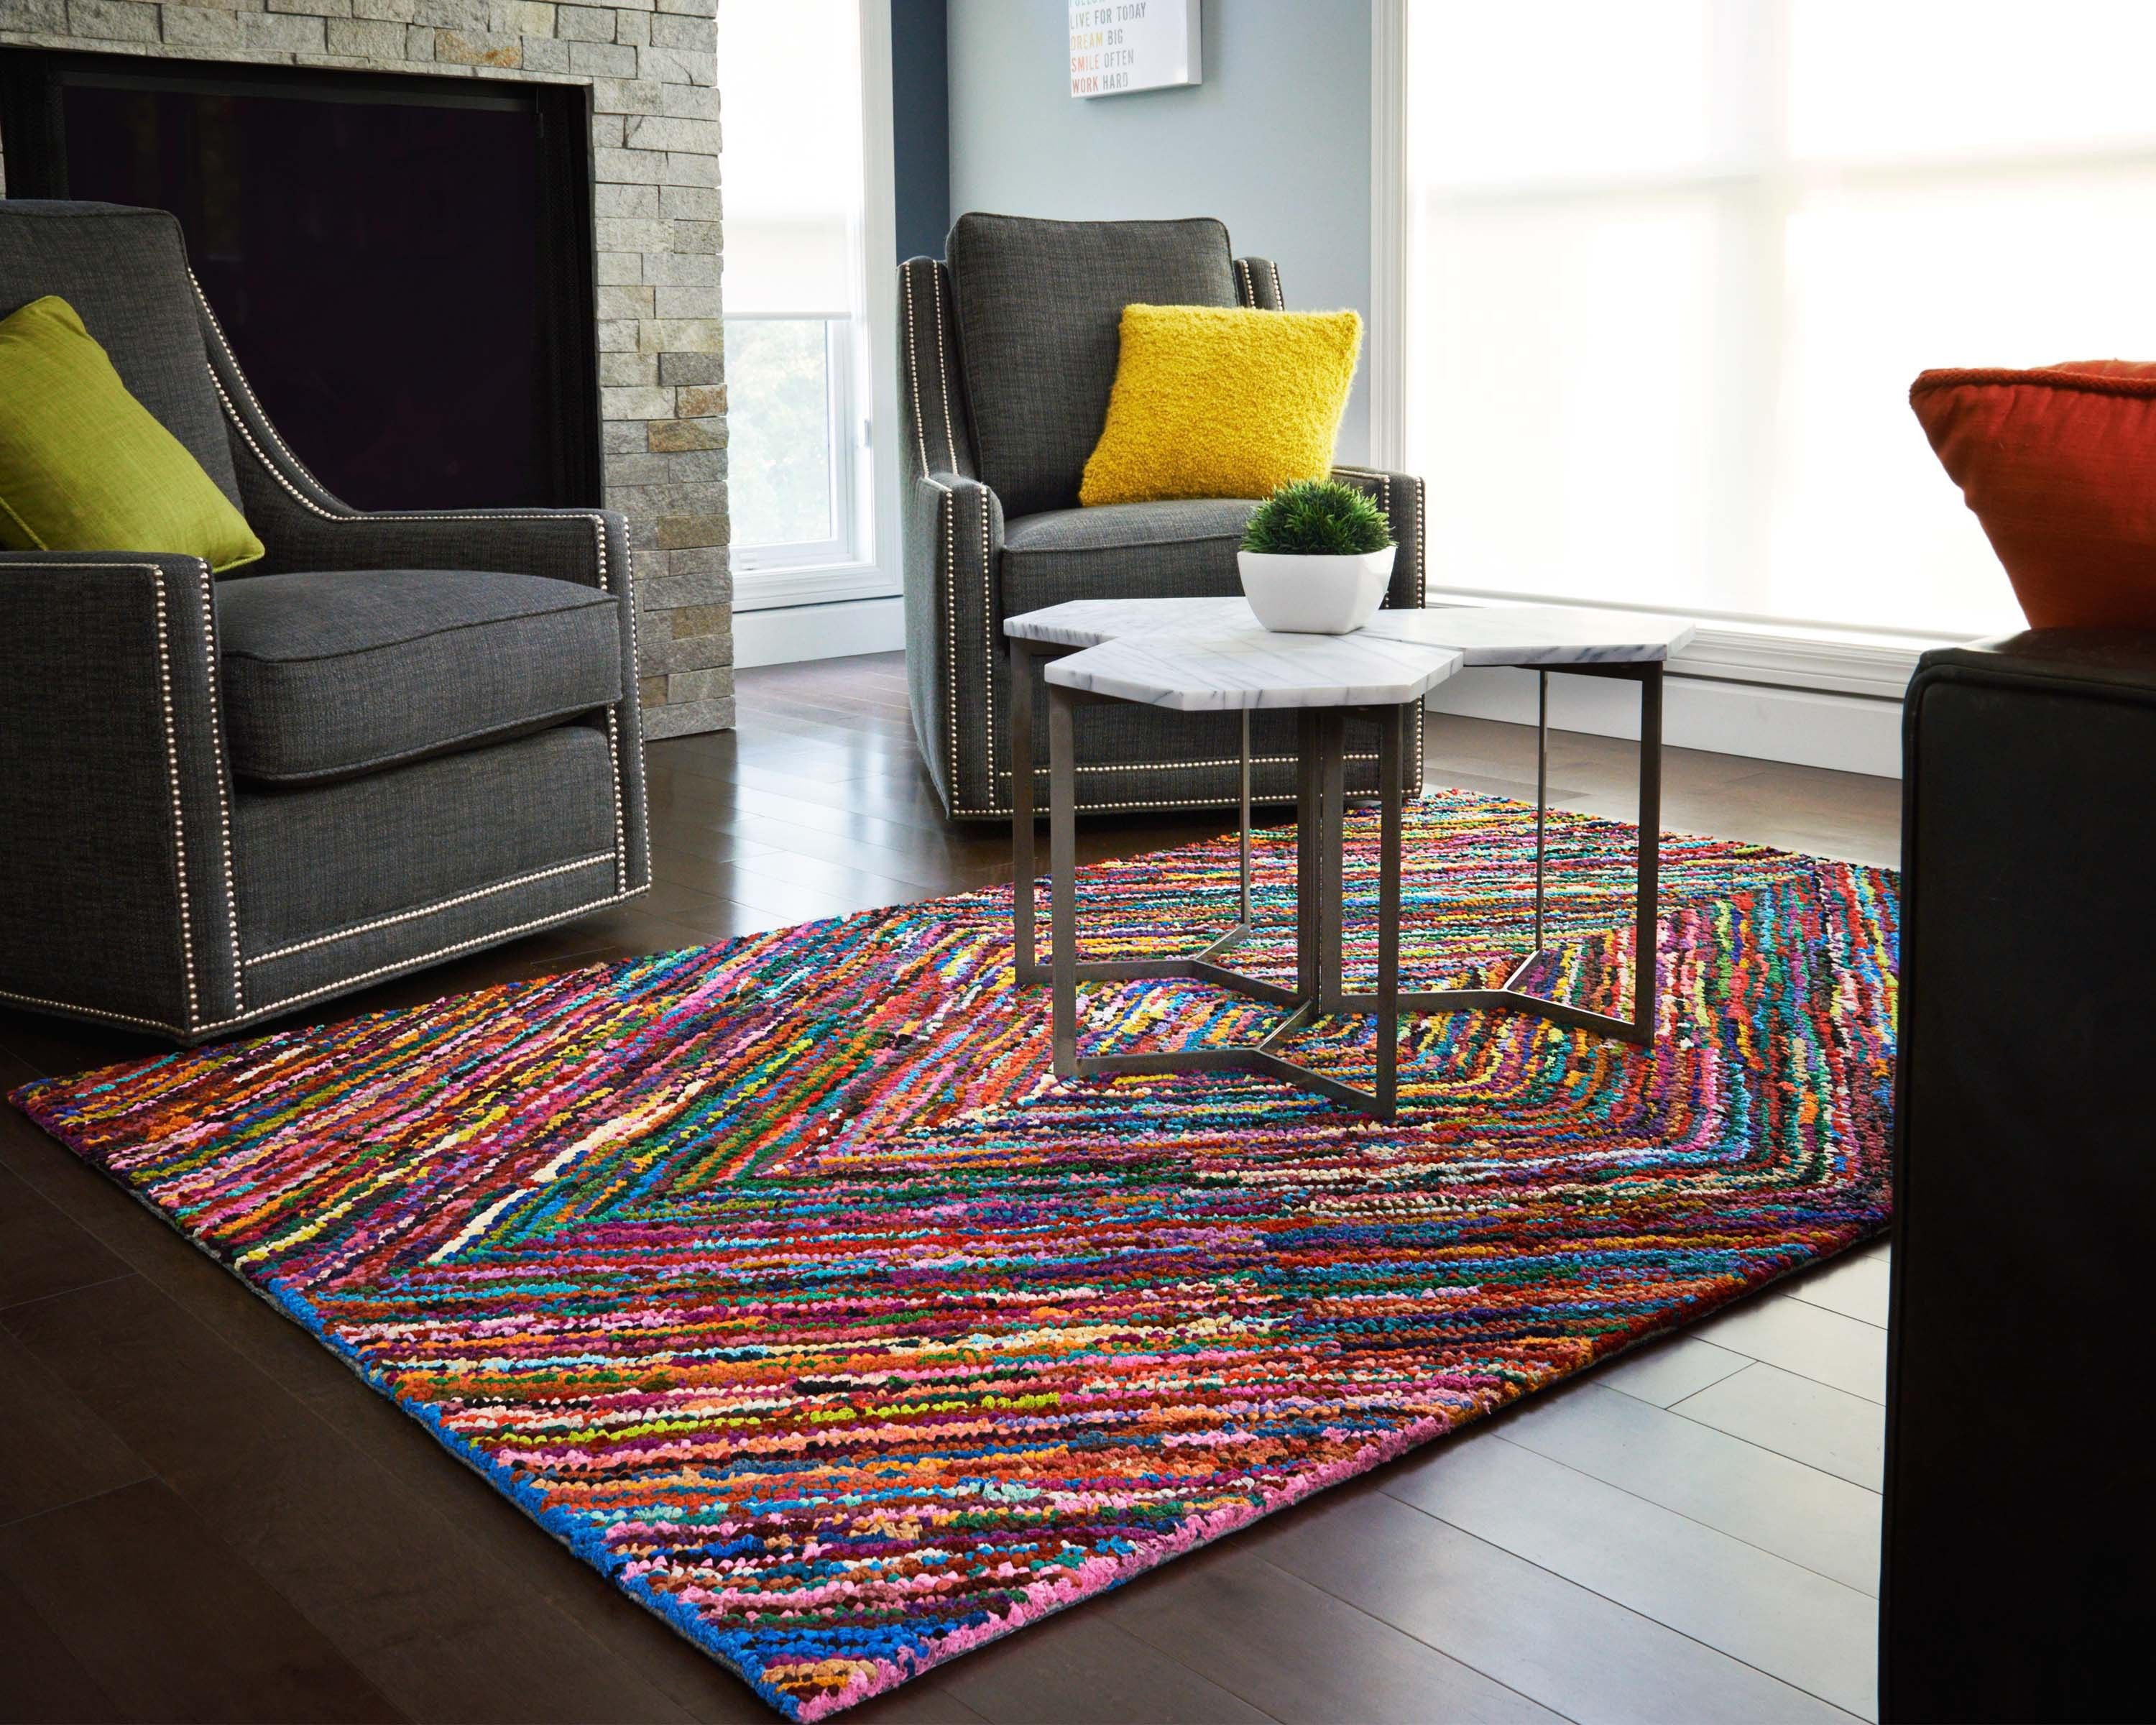 How To Dye A Rug Designs